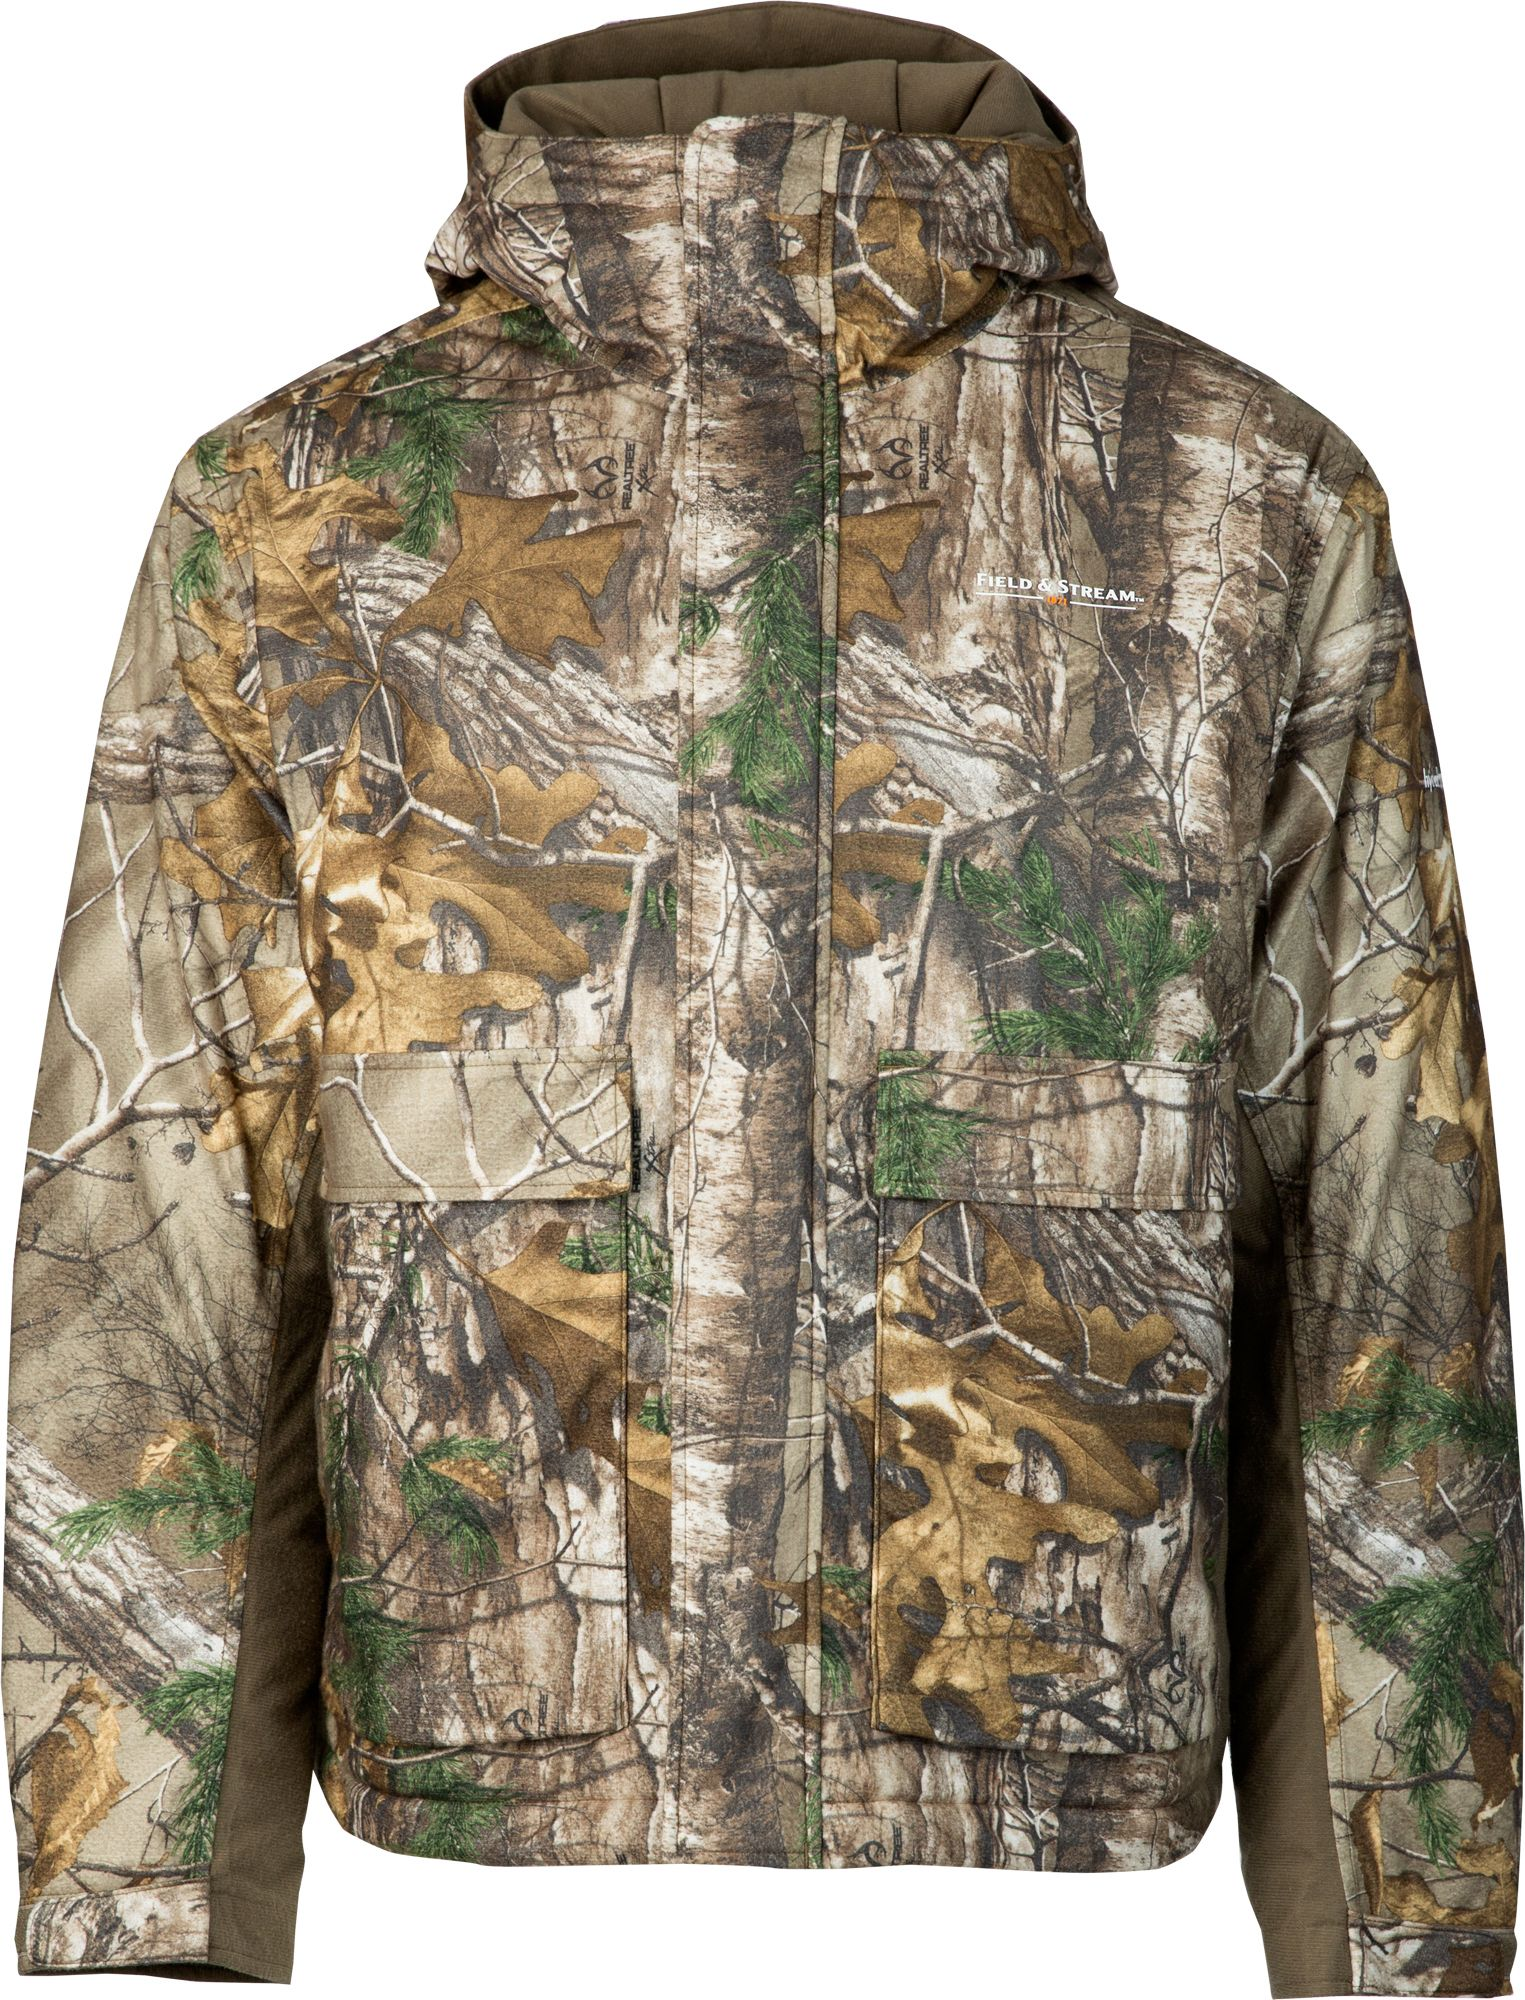 Field & Stream Men's True Pursuit Insulated Hunting Jacket, Realtree Xtra thumbnail